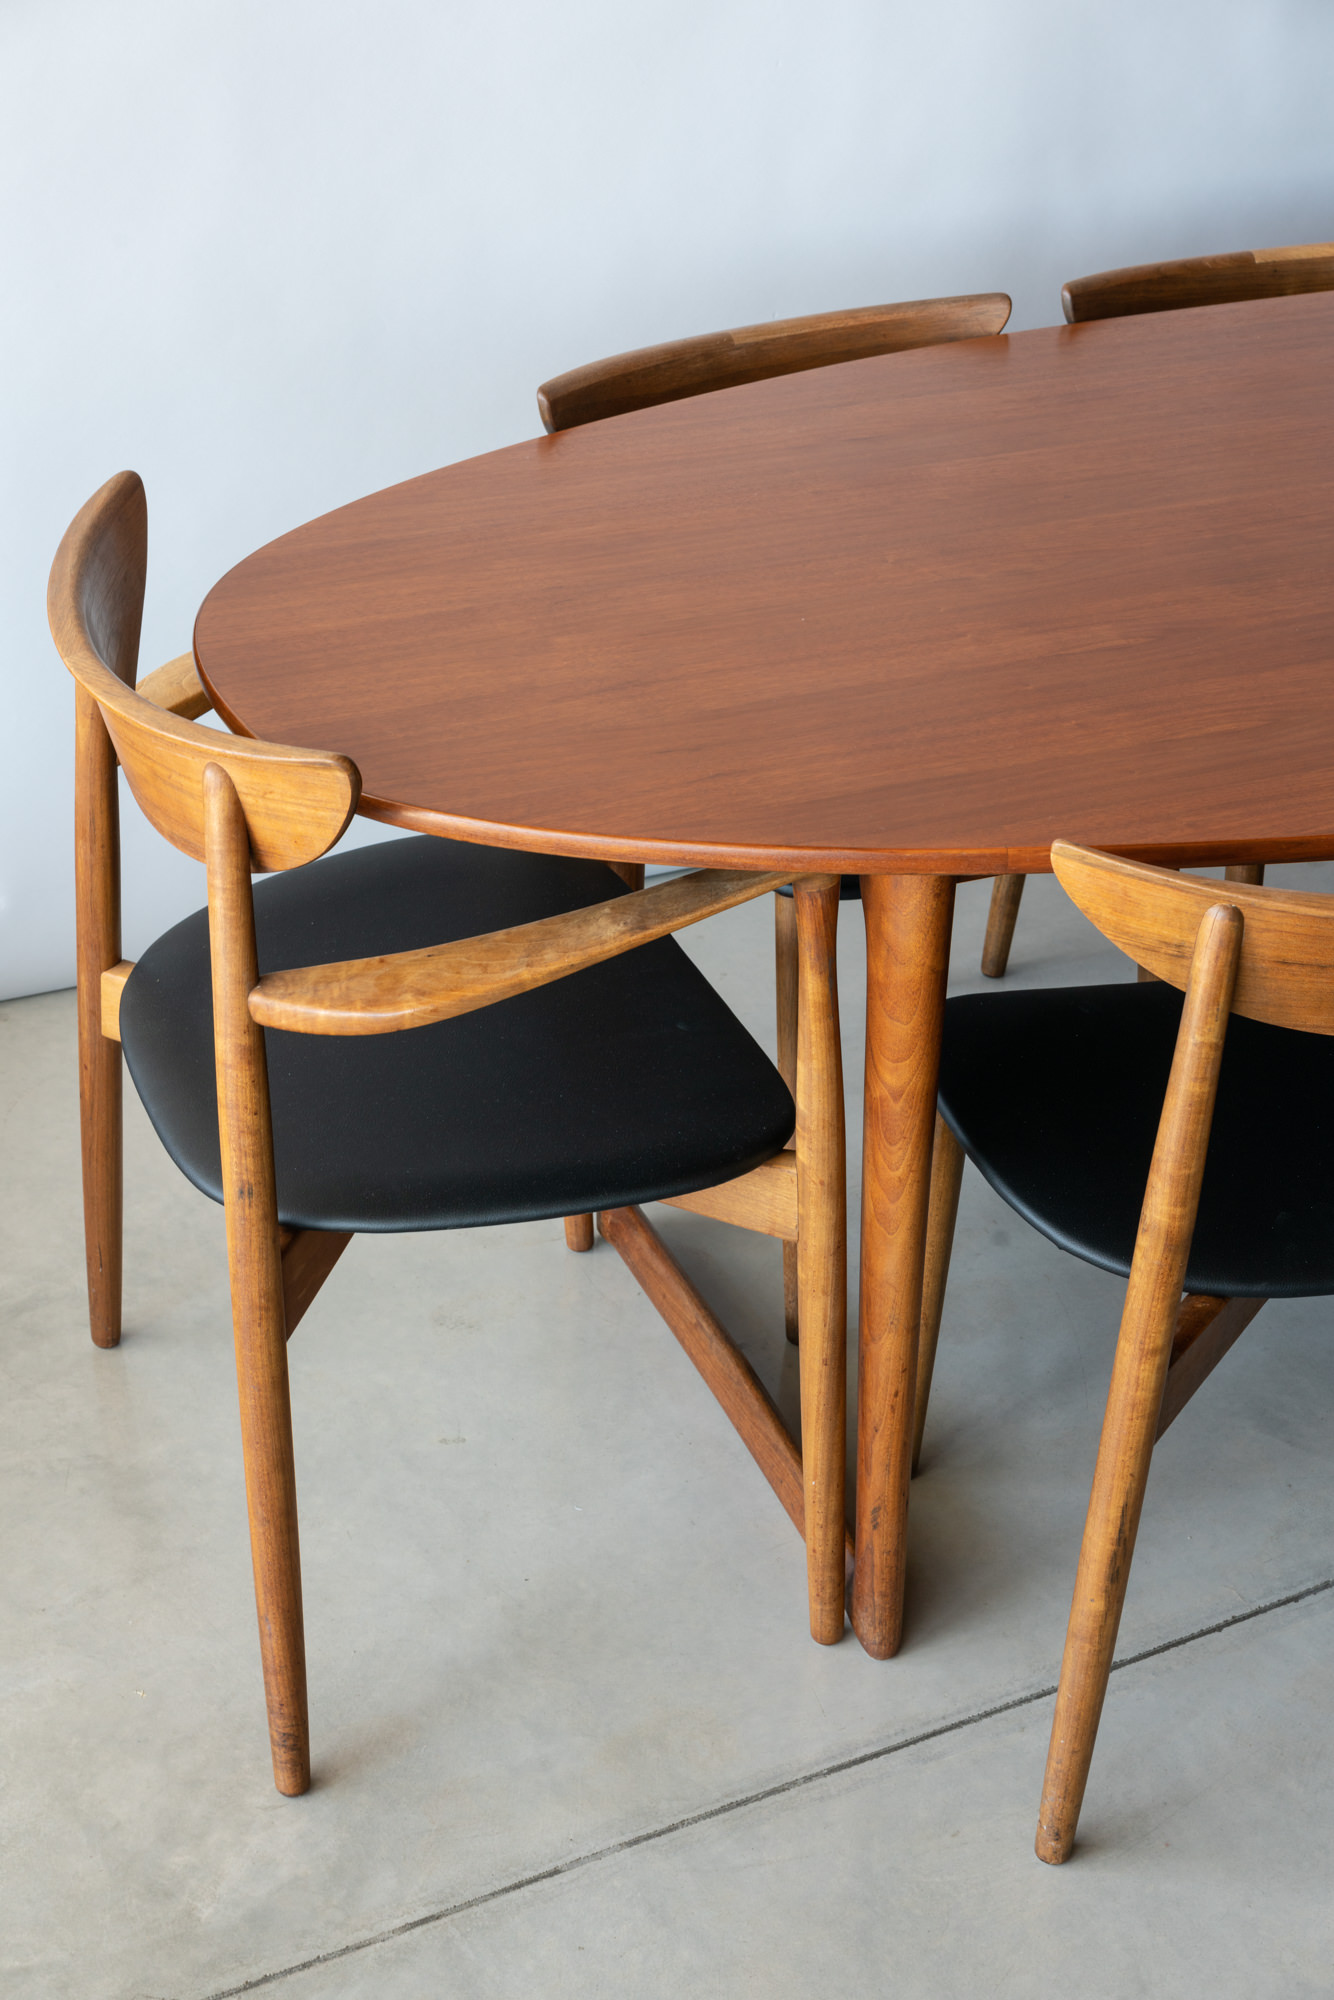 Ole Wanscher for Moreddi Dining Table and Chairs - $4200